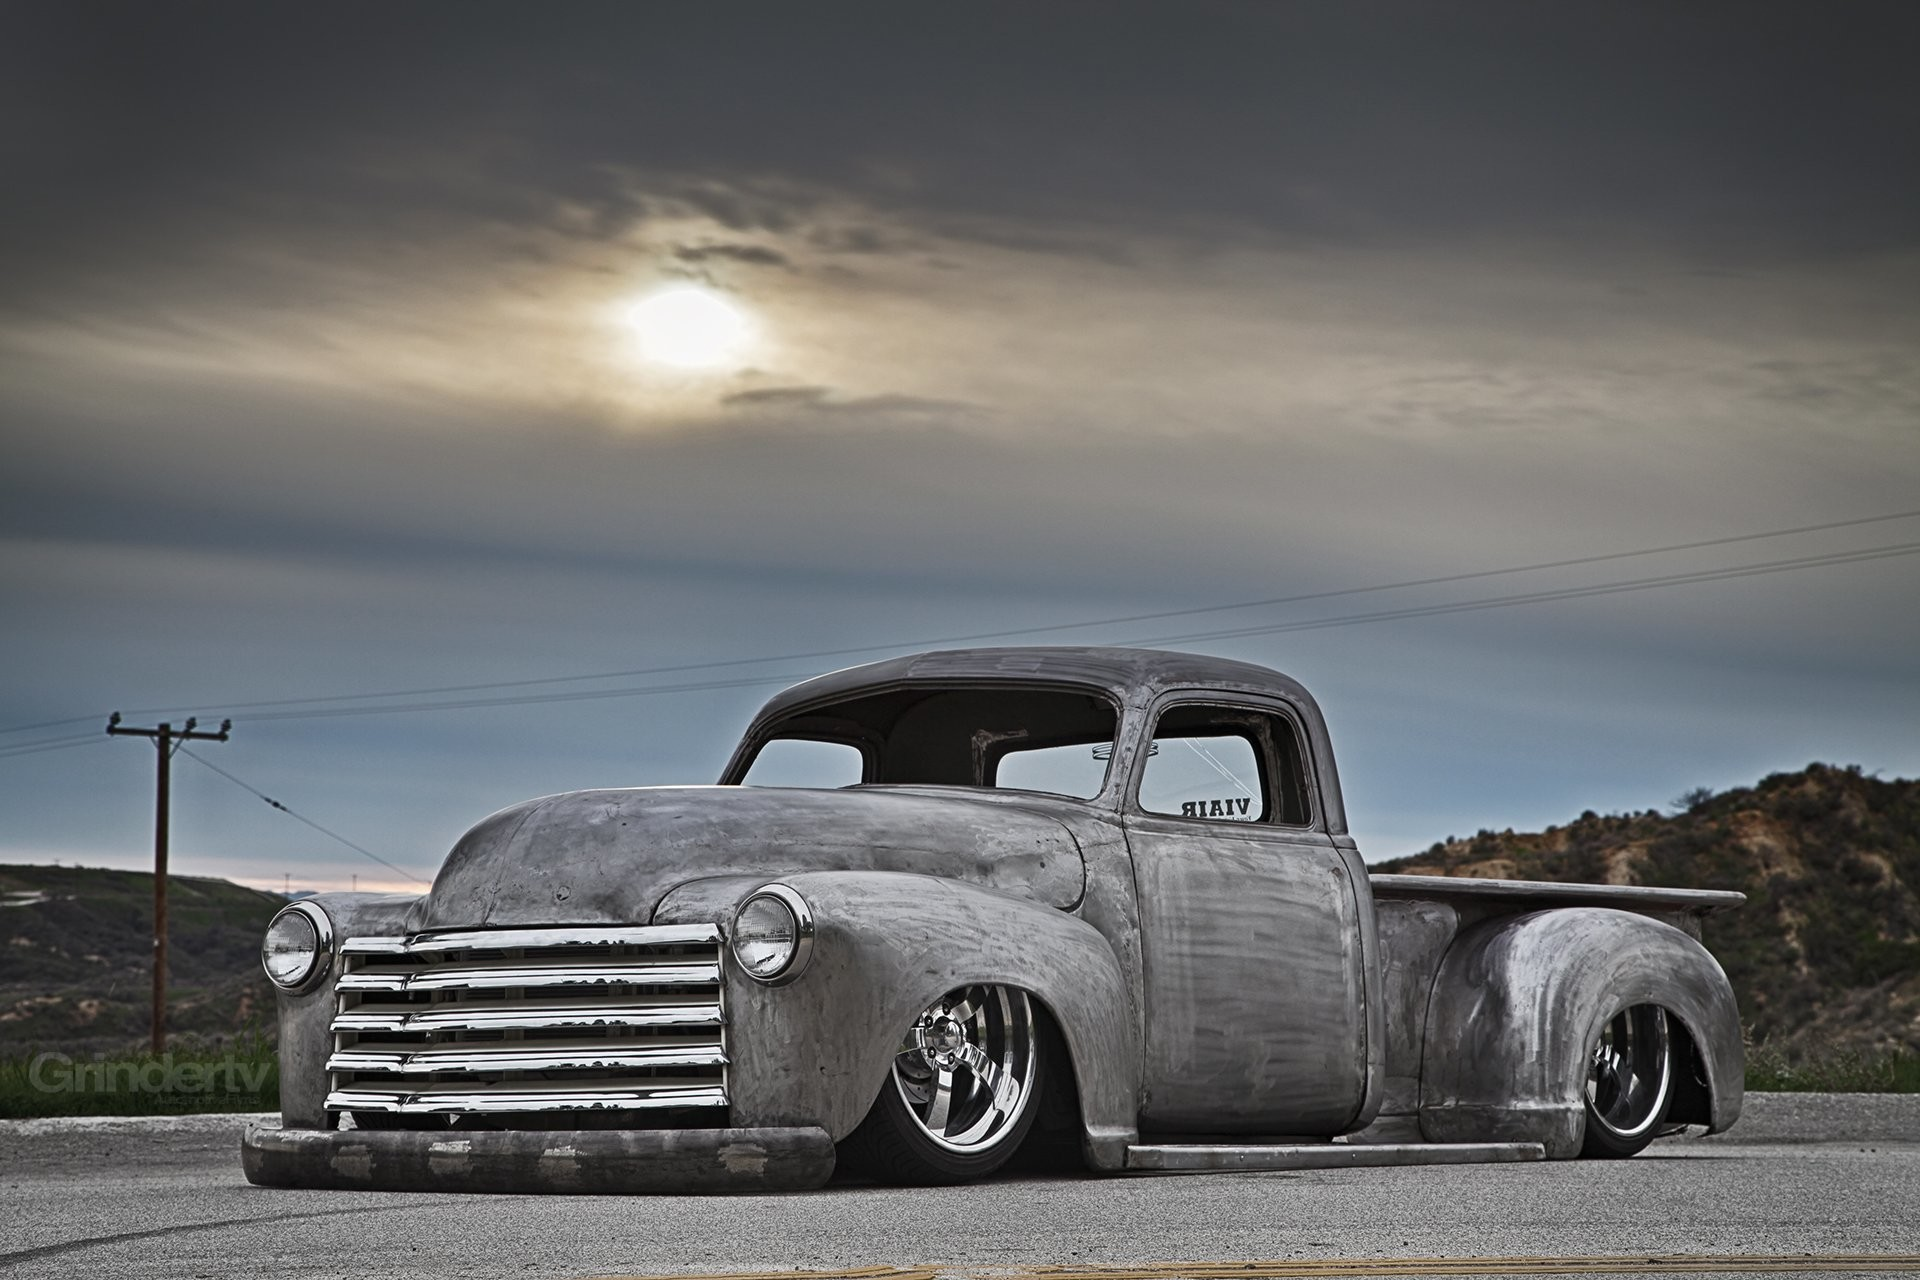 Lowrider Wallpaper Iphone Old Chevy Truck Wallpapers 44 Images